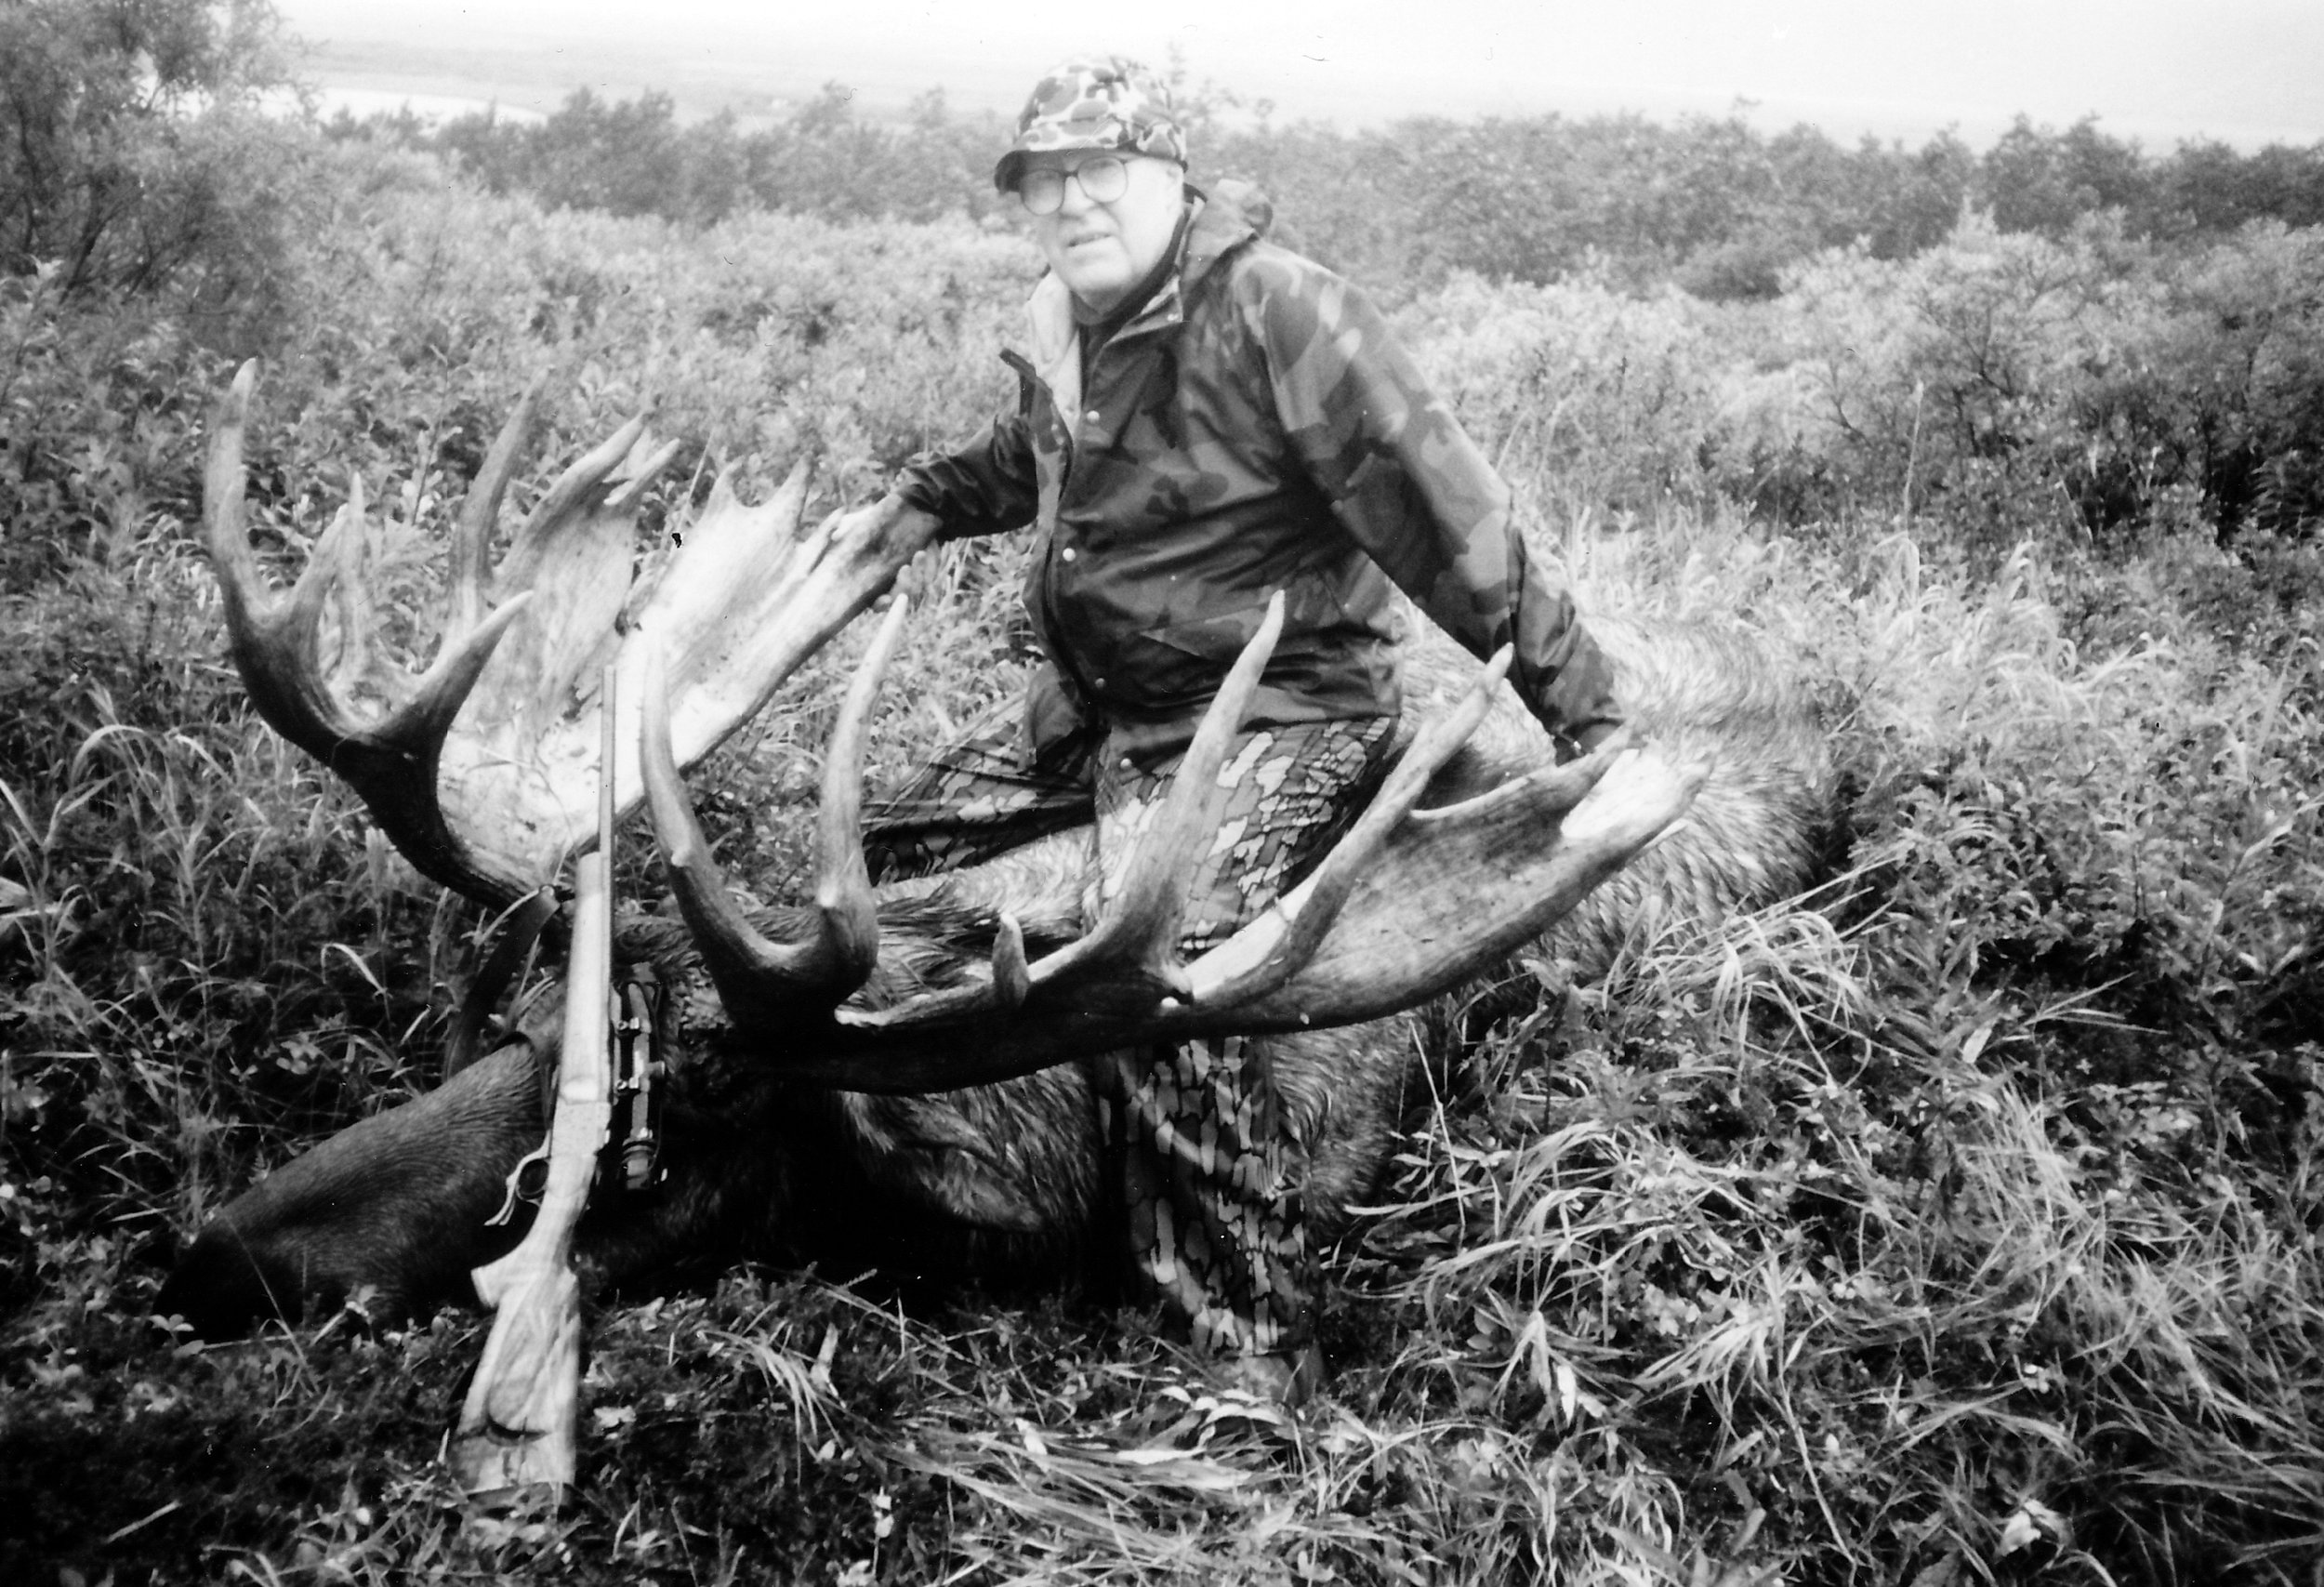 """Gen. Marvin Fuller, KS, with our largest scoring B&C moose. It scored 243 3/8 B&C points with a 67 1/2"""" spread. It was taken in '88 on the Alaska Peninsula."""